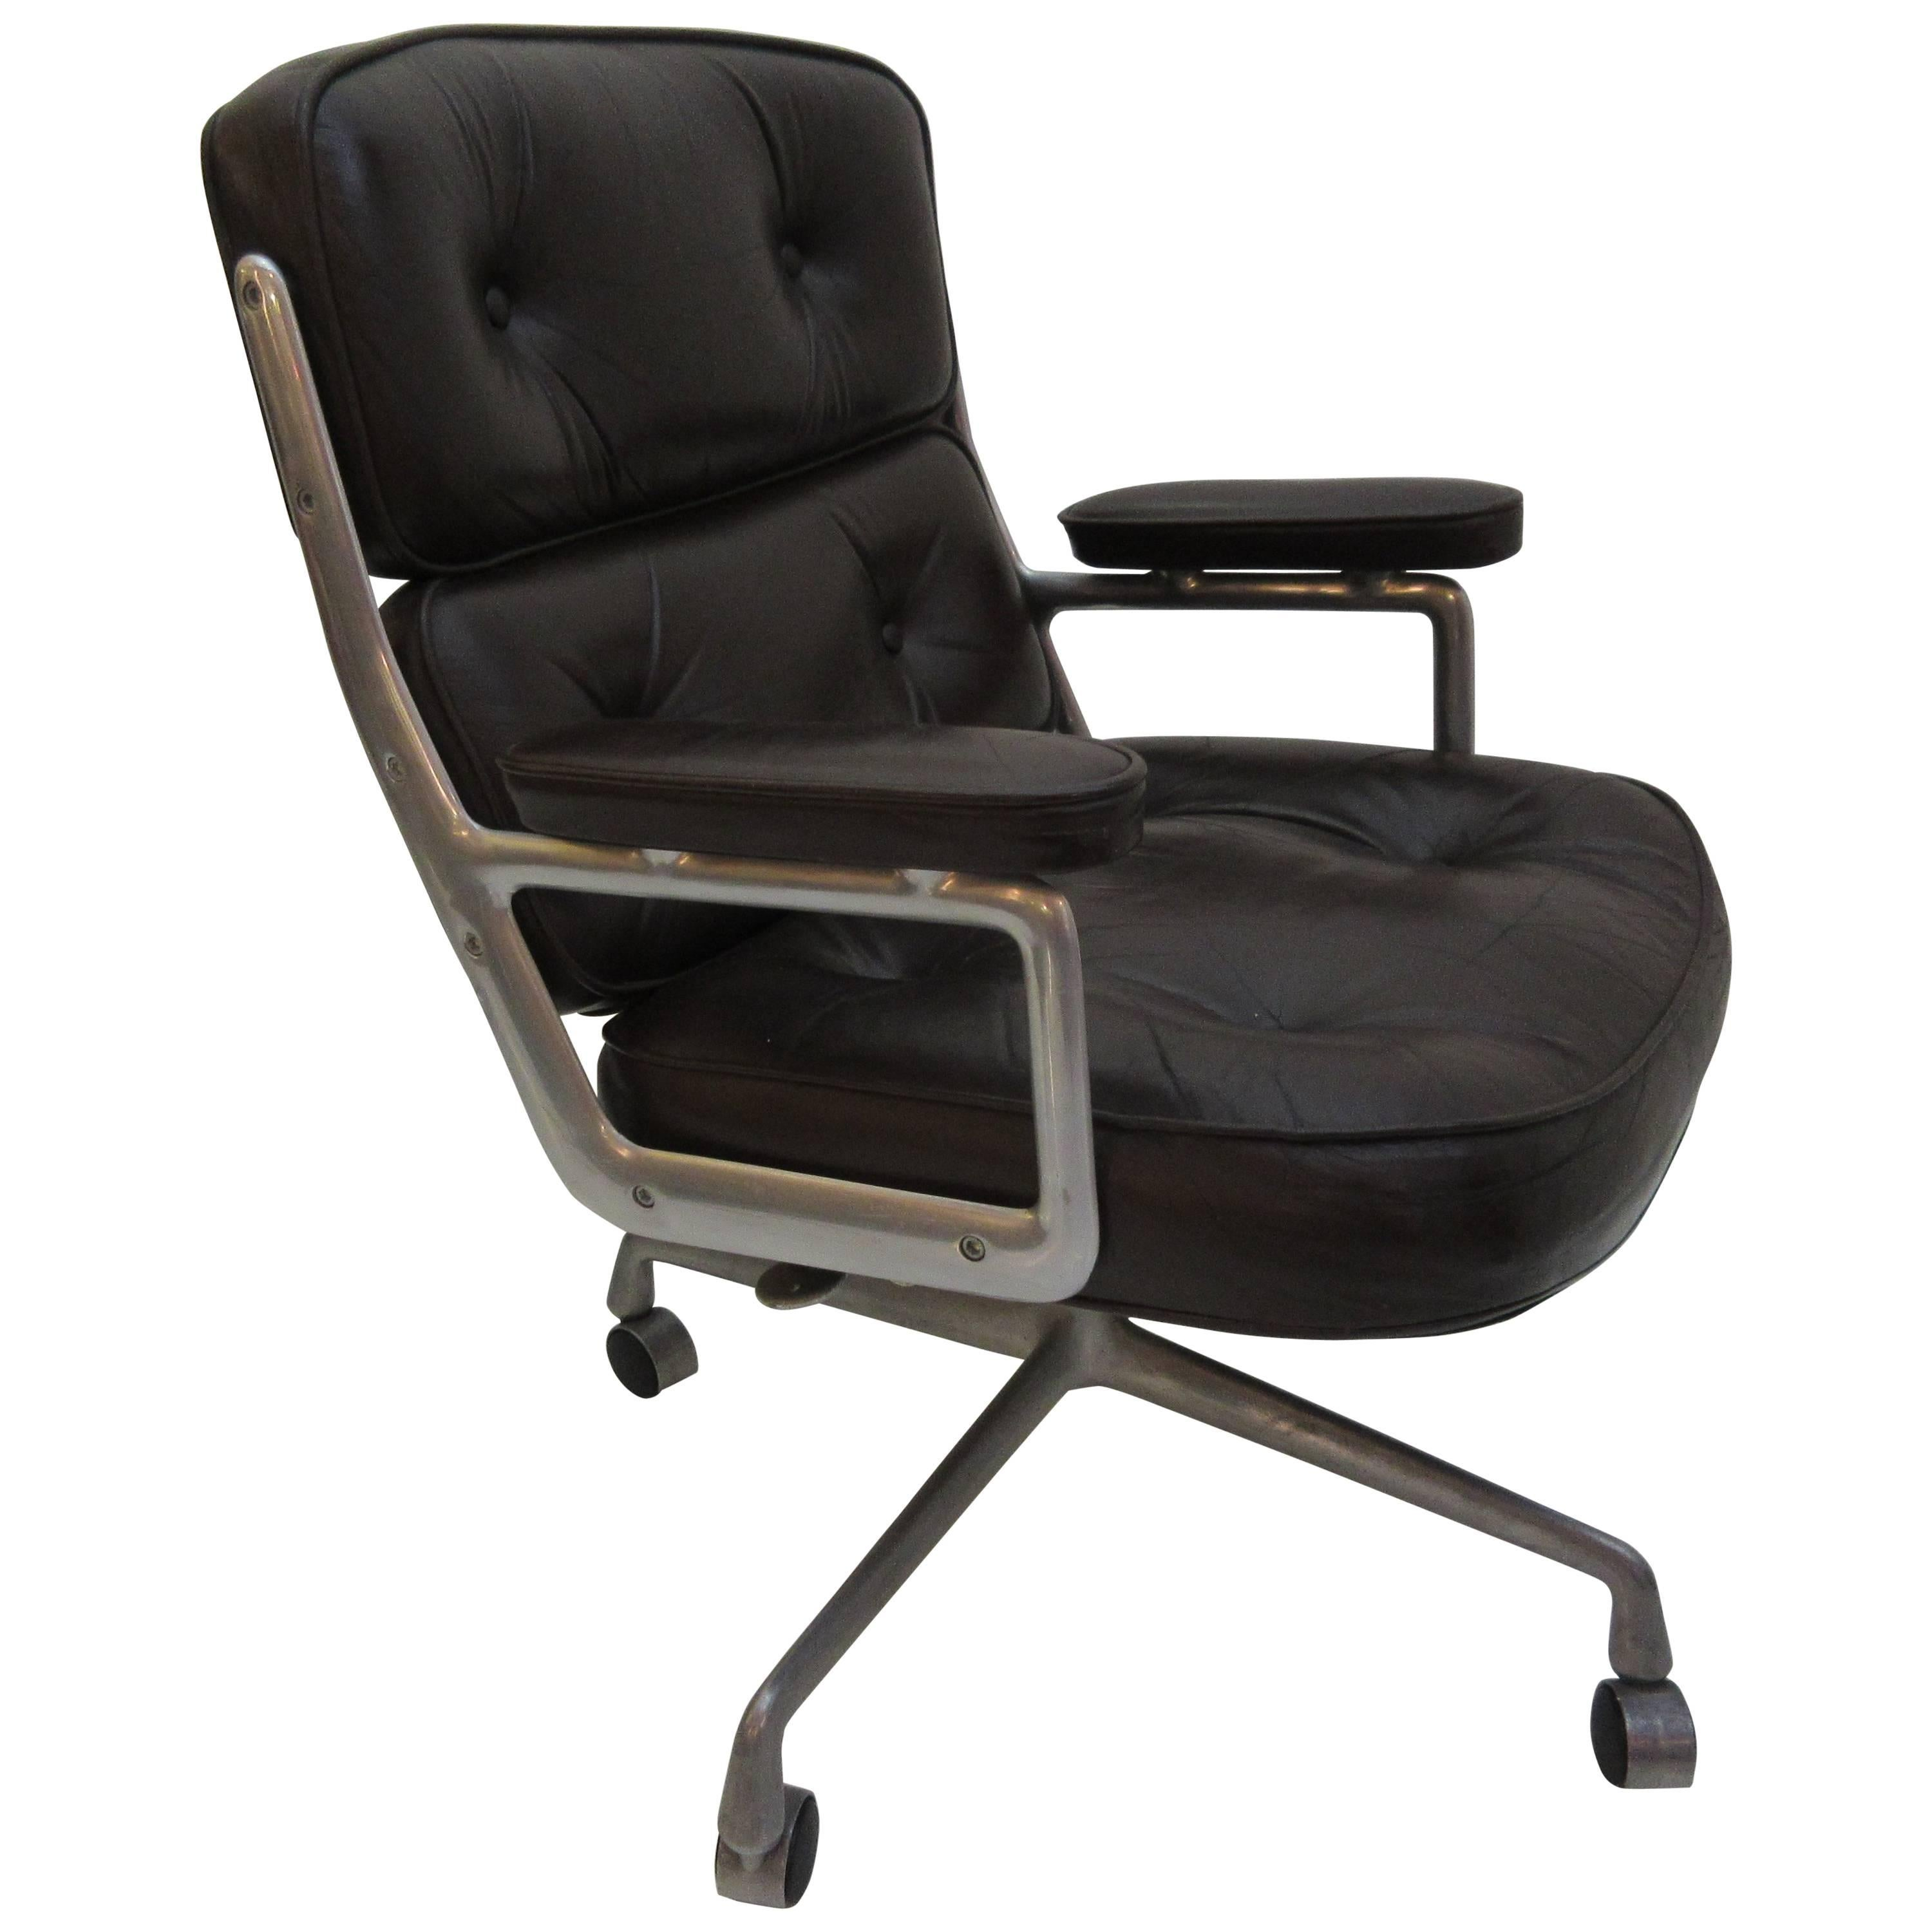 Charles and Ray Eames Time Life Chair by Herman Miller at